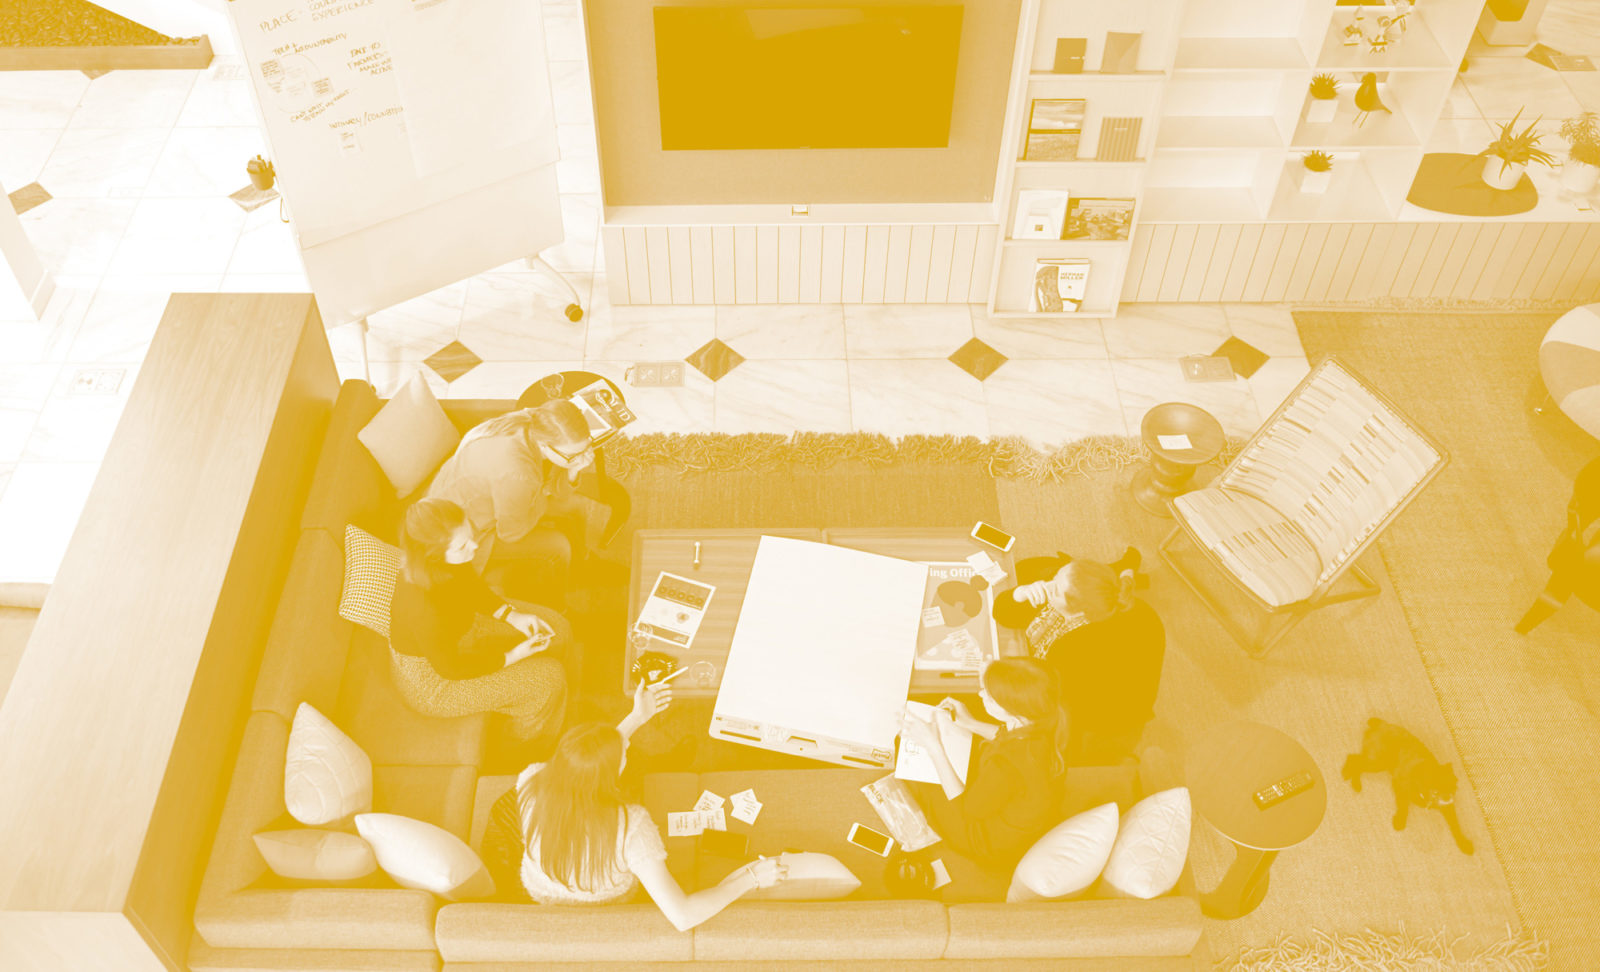 An overhead view of a group of designers sitting on the l-shaped couch on the main floor of the MarxModa headquarters in downtown Detroit, MI.